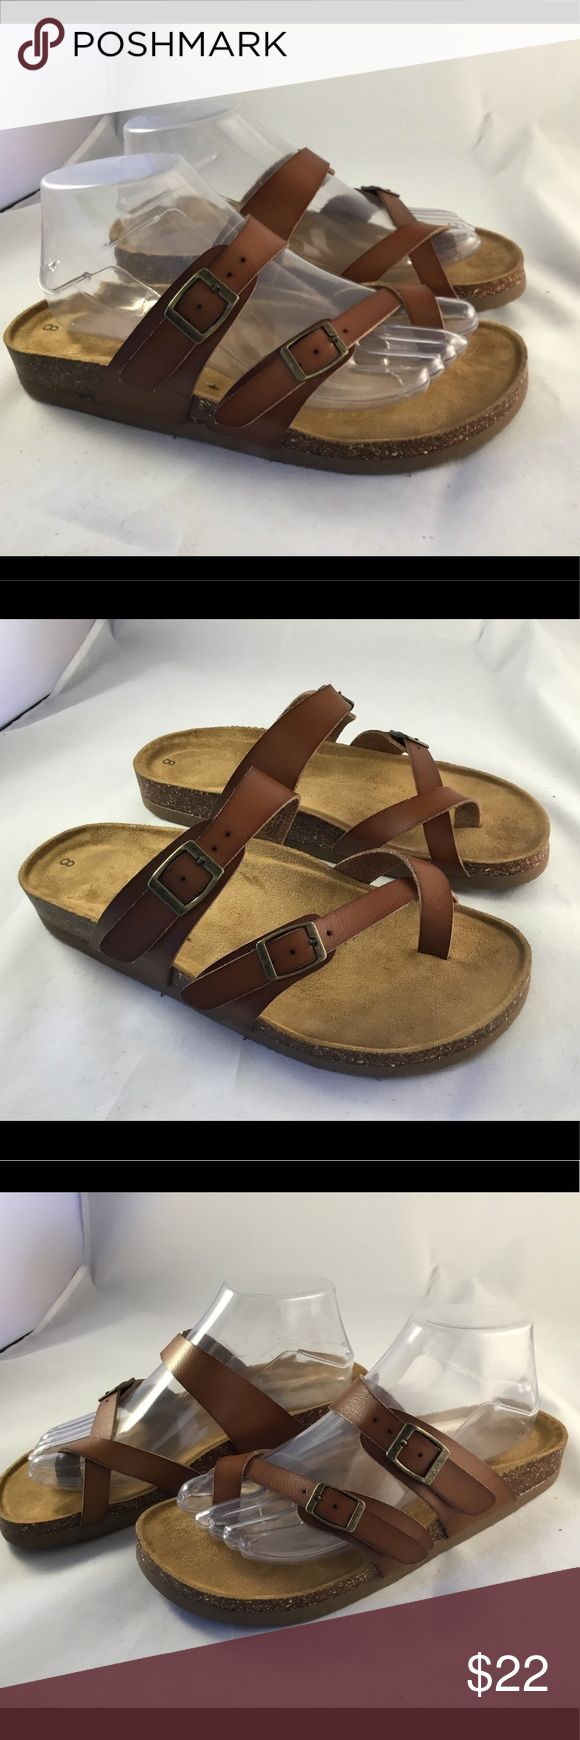 New sz 8  Eastland sandals Birk style New! Quality leather with contoured cork heel and plush insole.  Very nice! Eastland Shoes Sandals